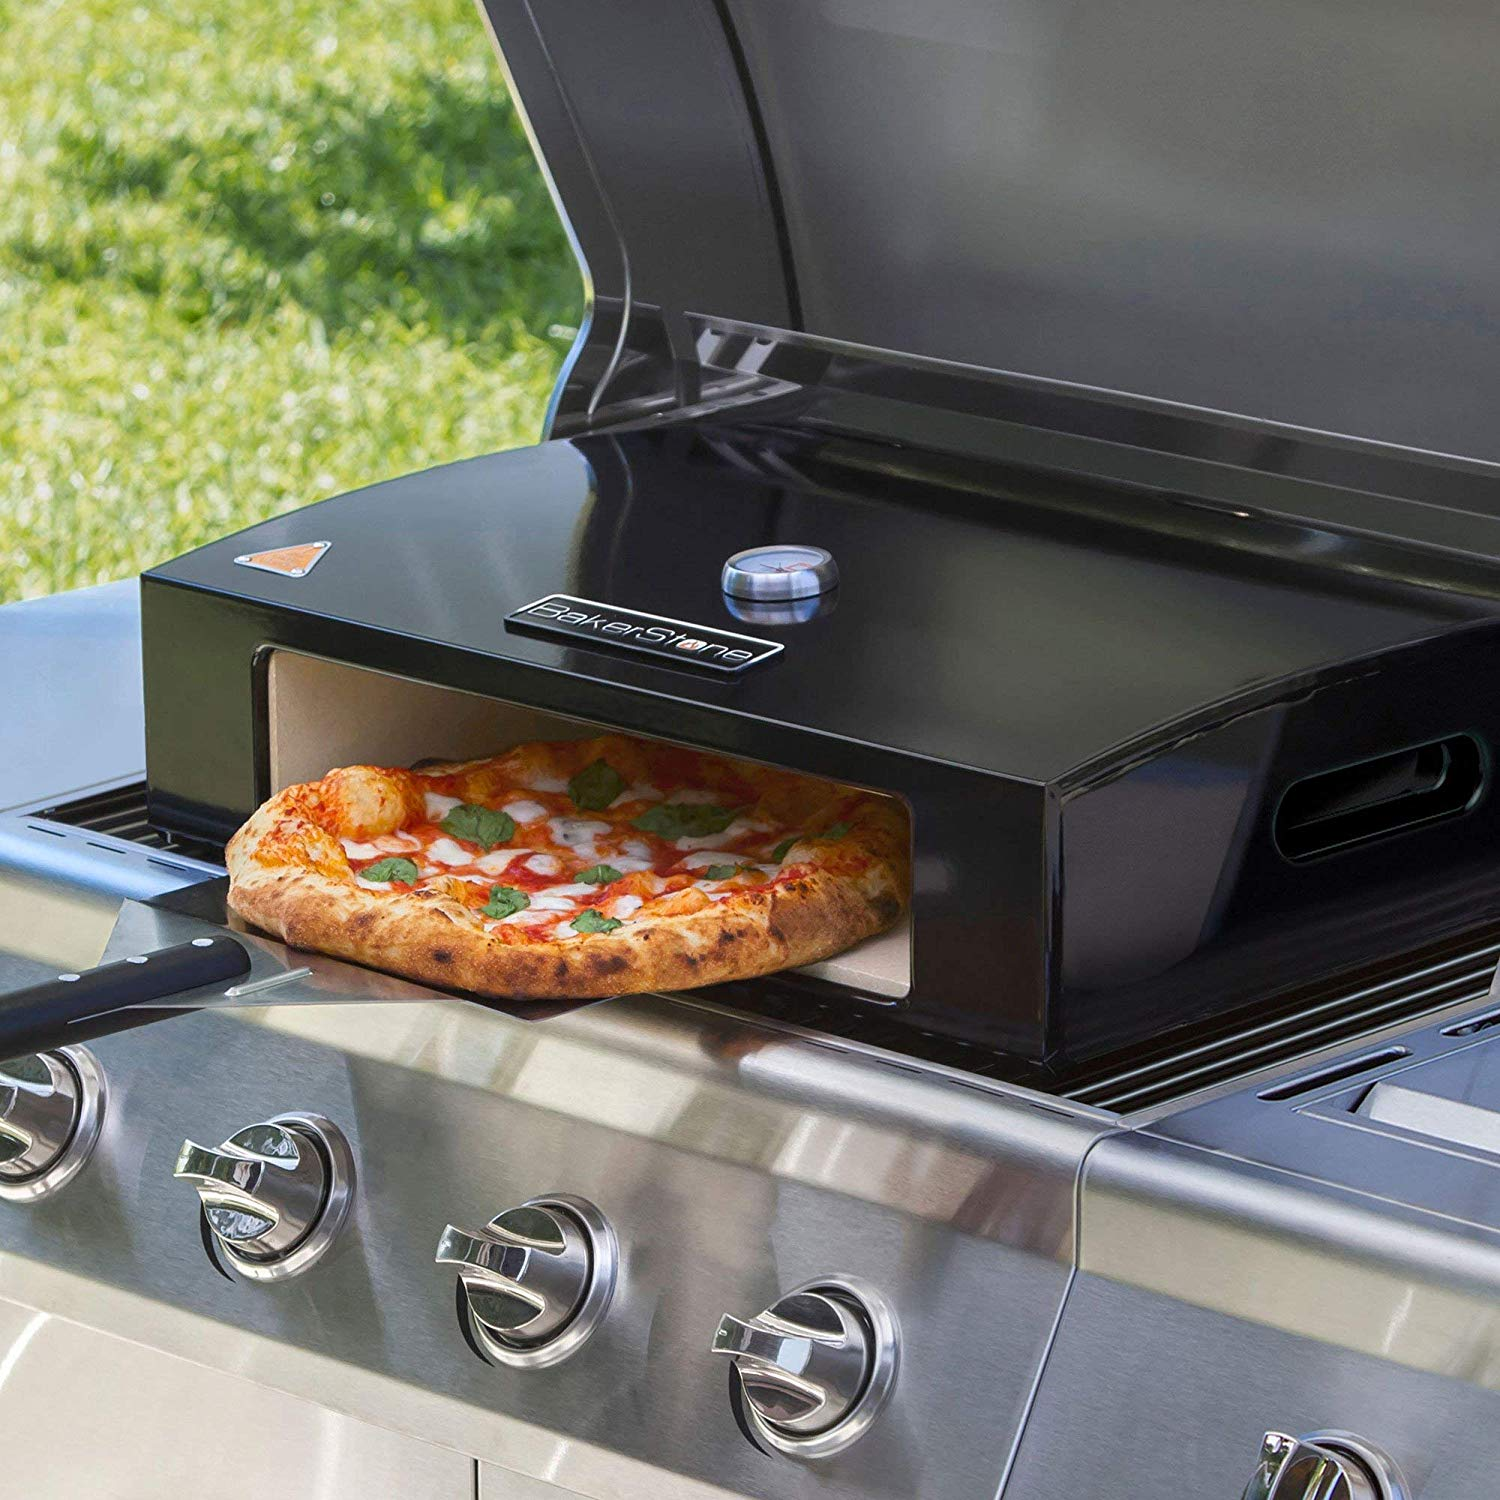 Bakerstone Pizza oven for bbq